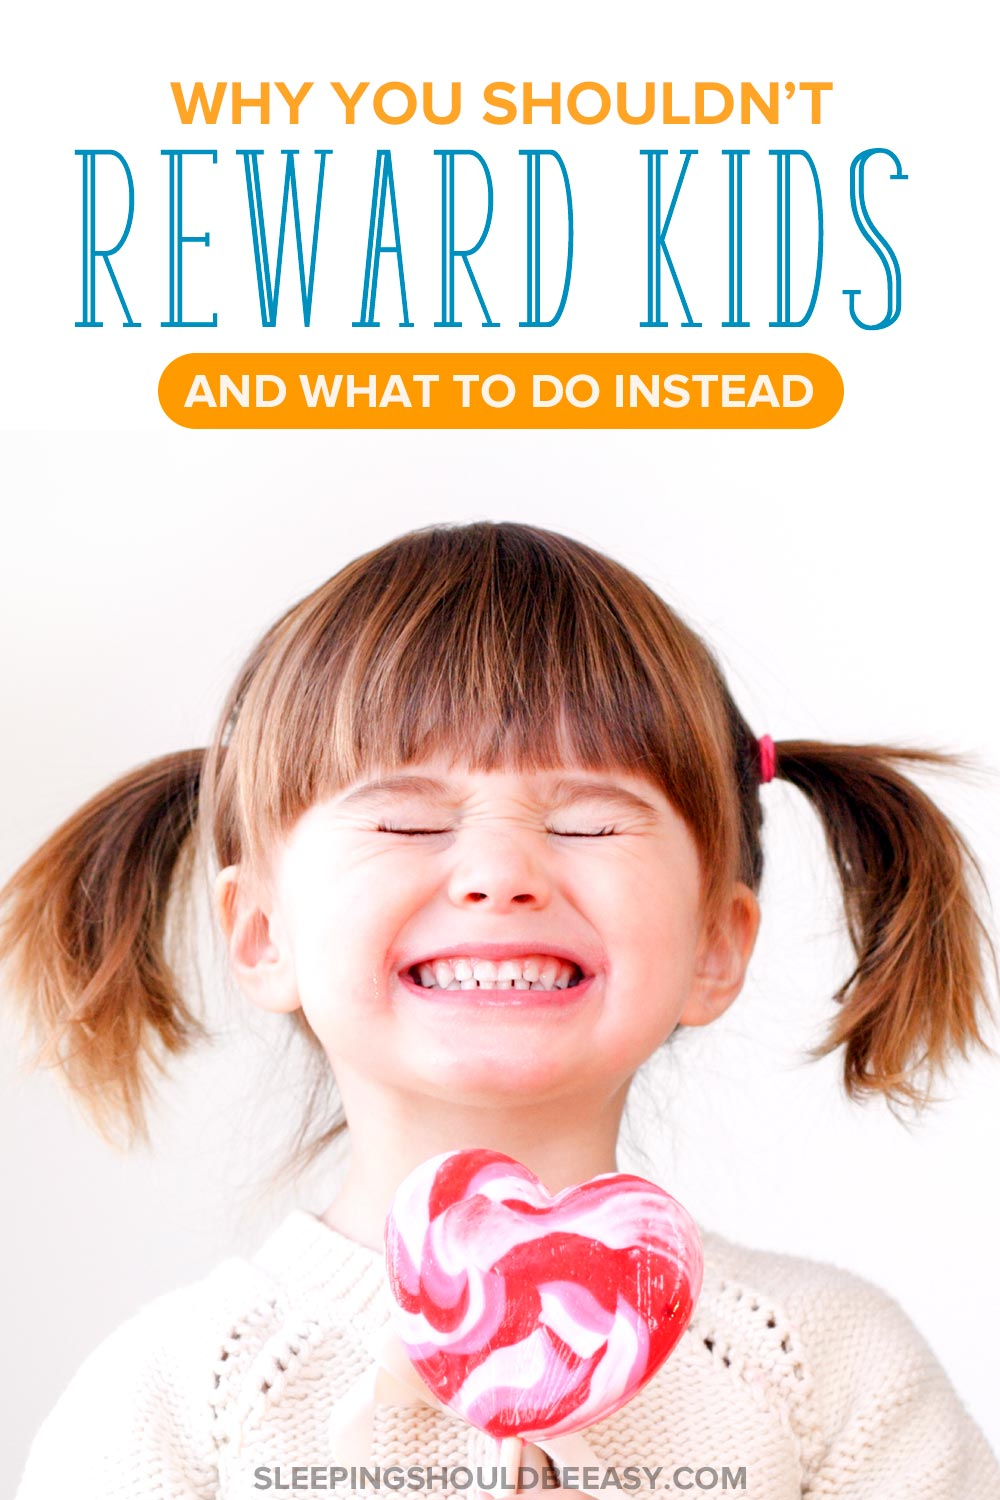 Little girl holding a lollipop: Why you shouldn't reward kids